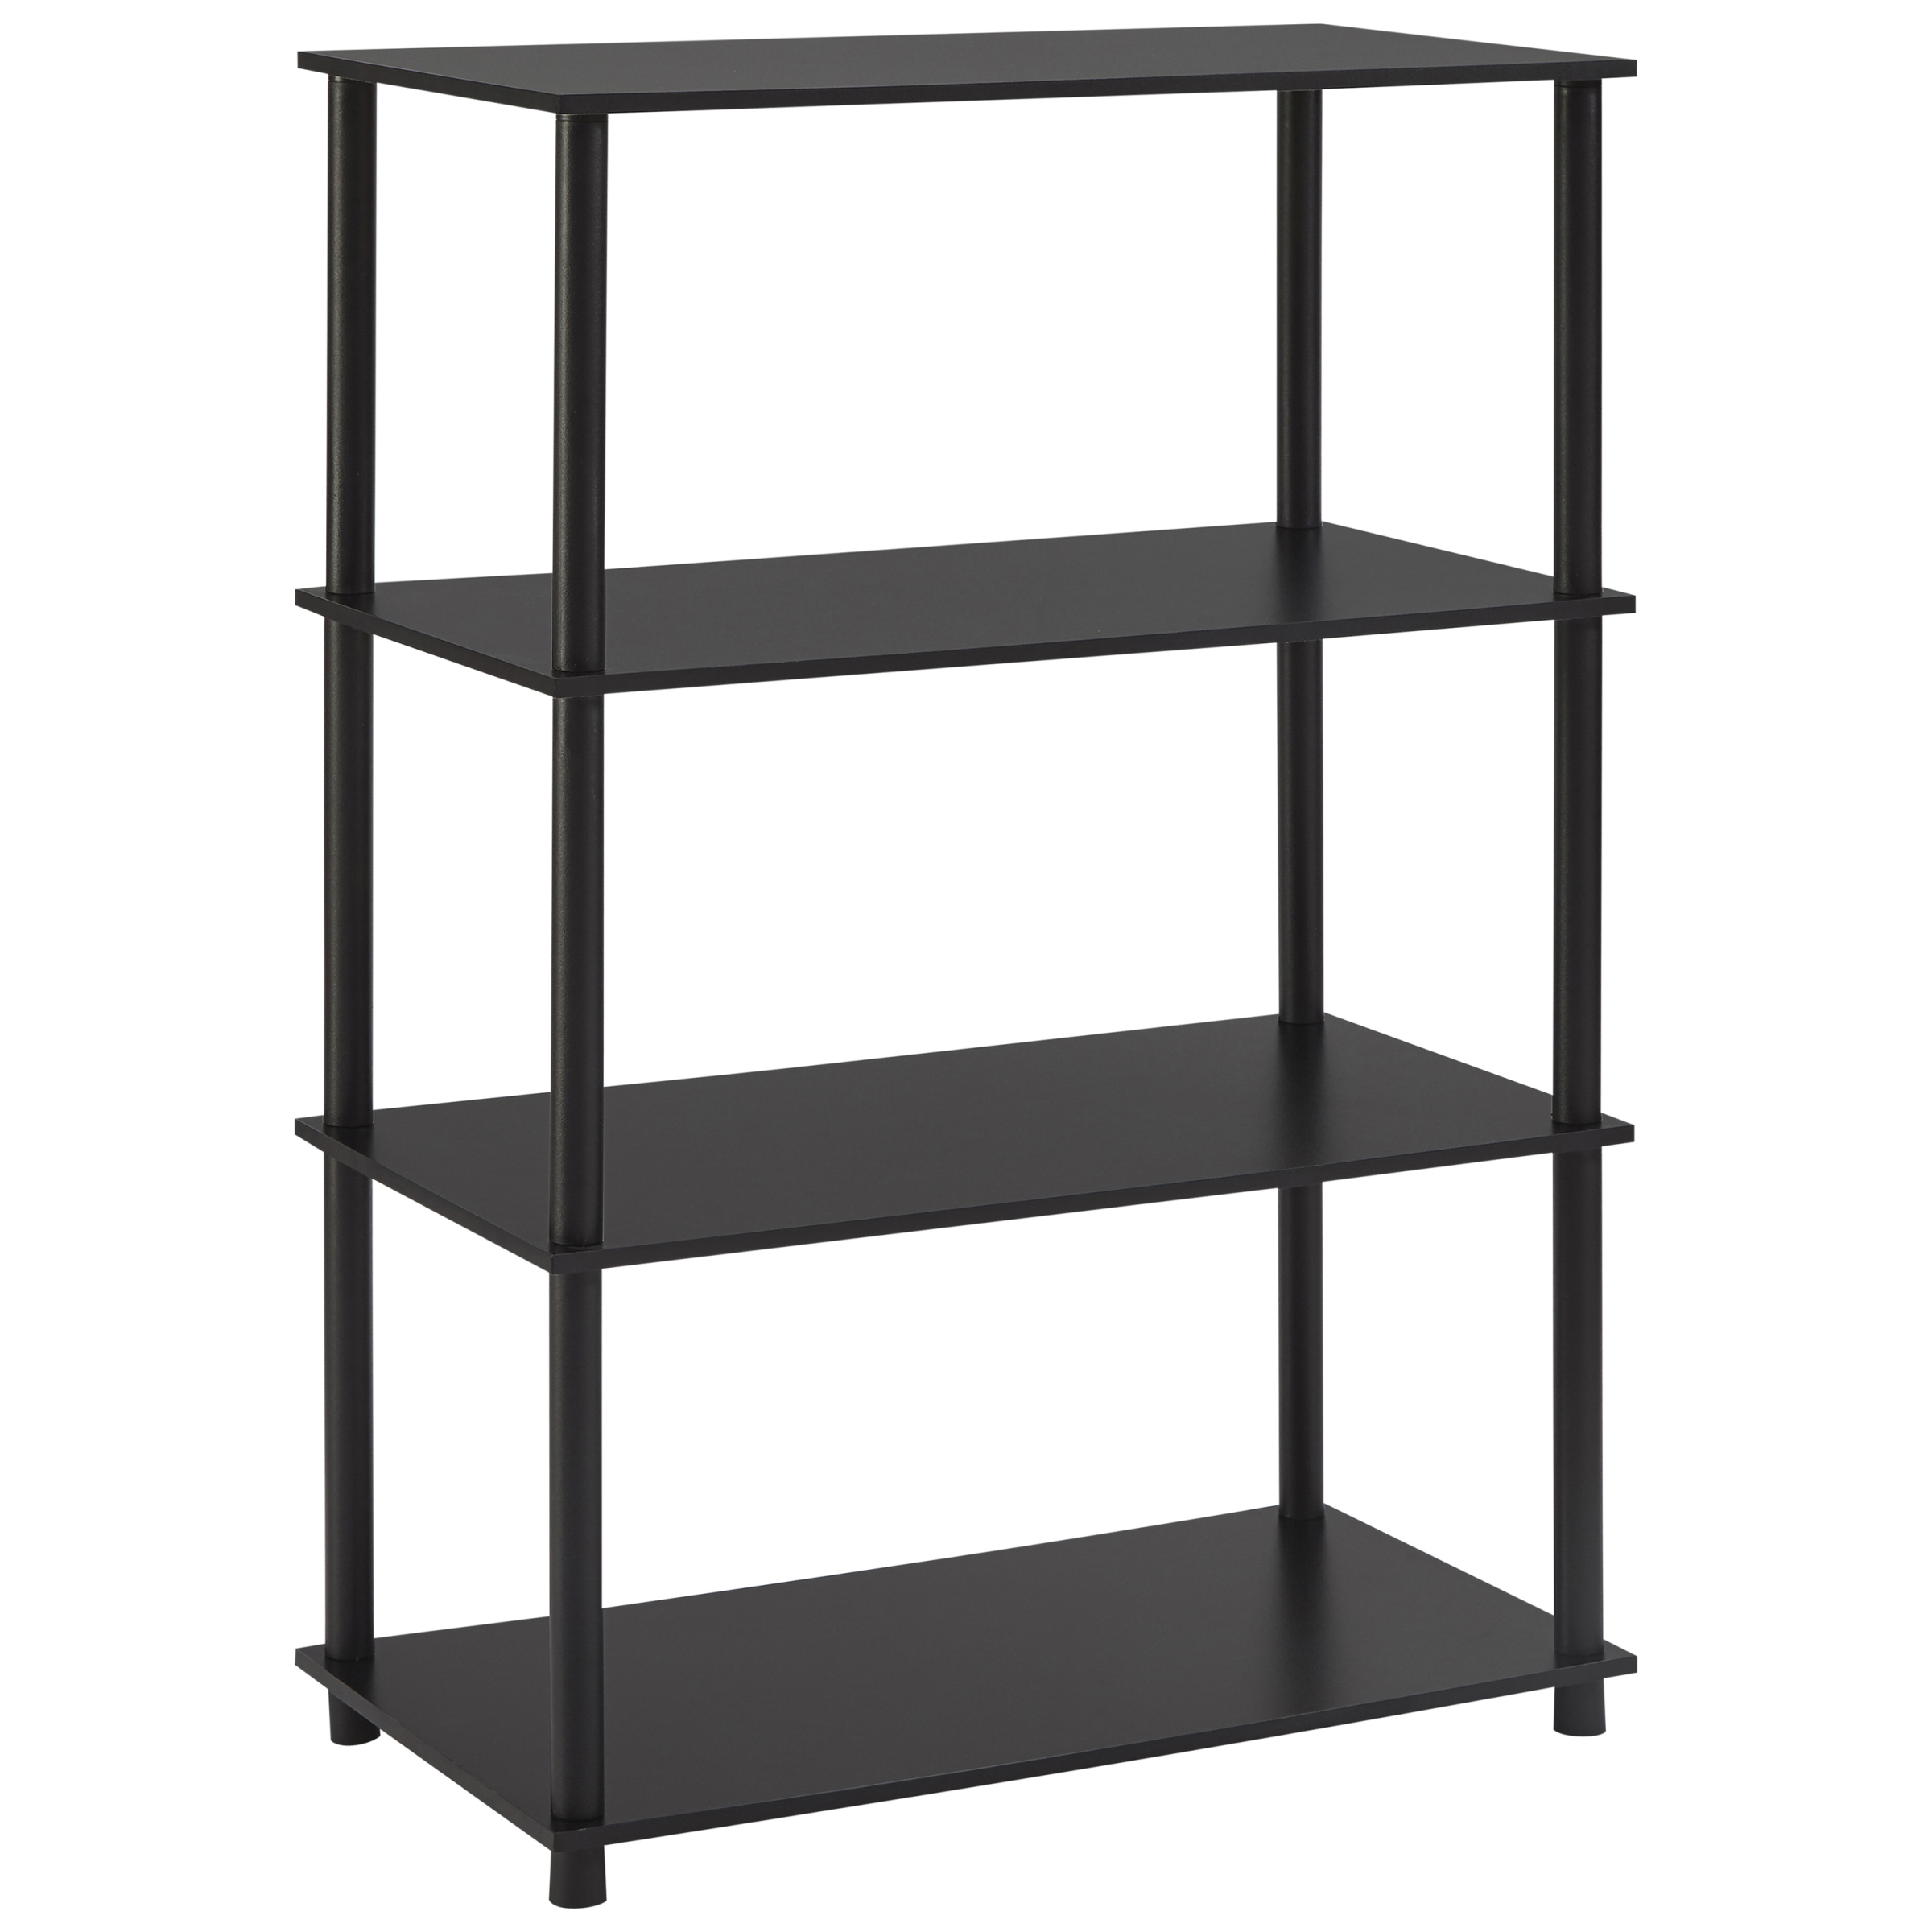 "Mainstays 42.6"" 4-Shelf Bookcase, Black Finish"